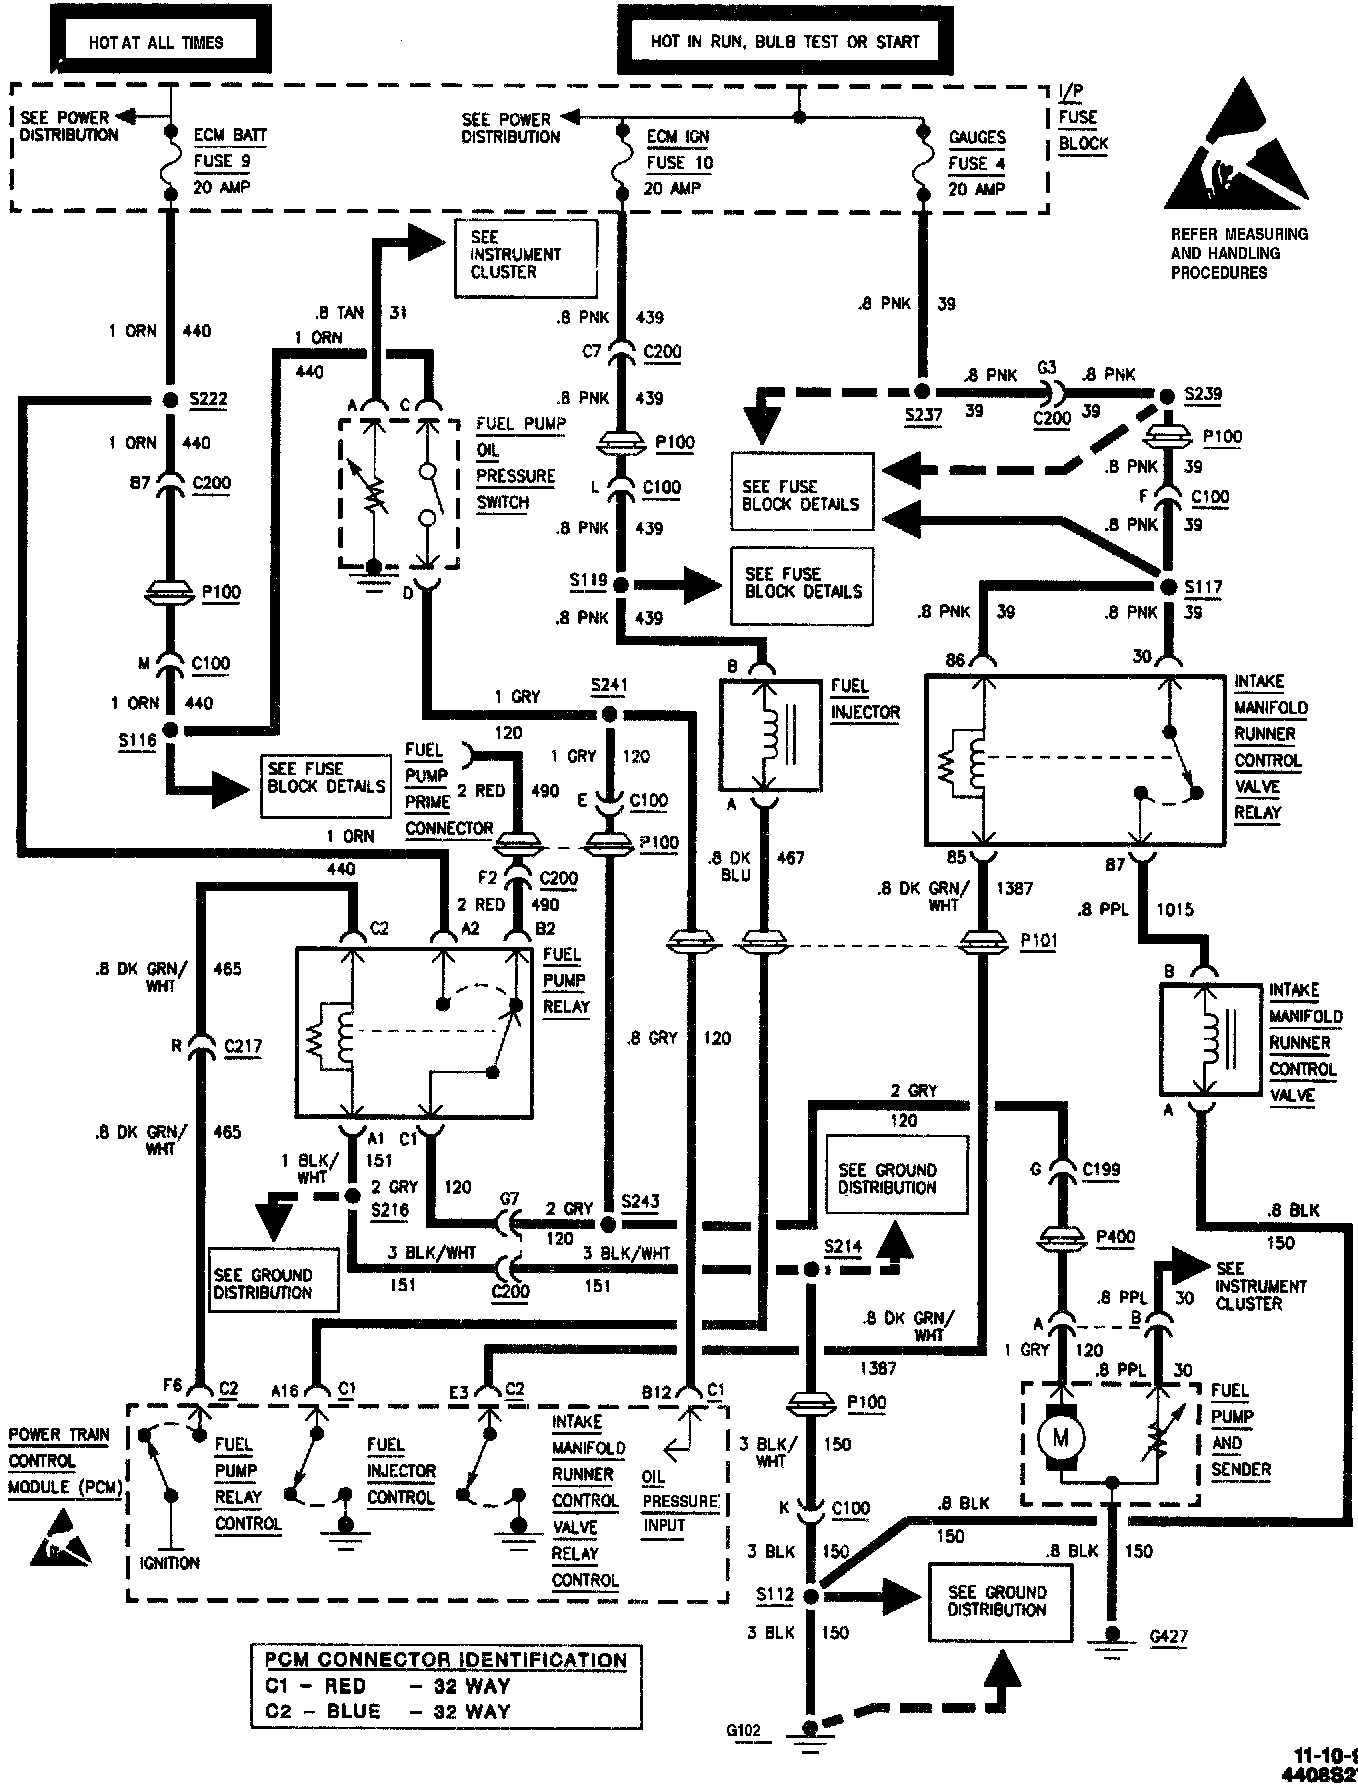 Mack Cv713 Fuse Box Diagram Starting Know About Wiring 2004 Dodge Silver Truck And Schematics